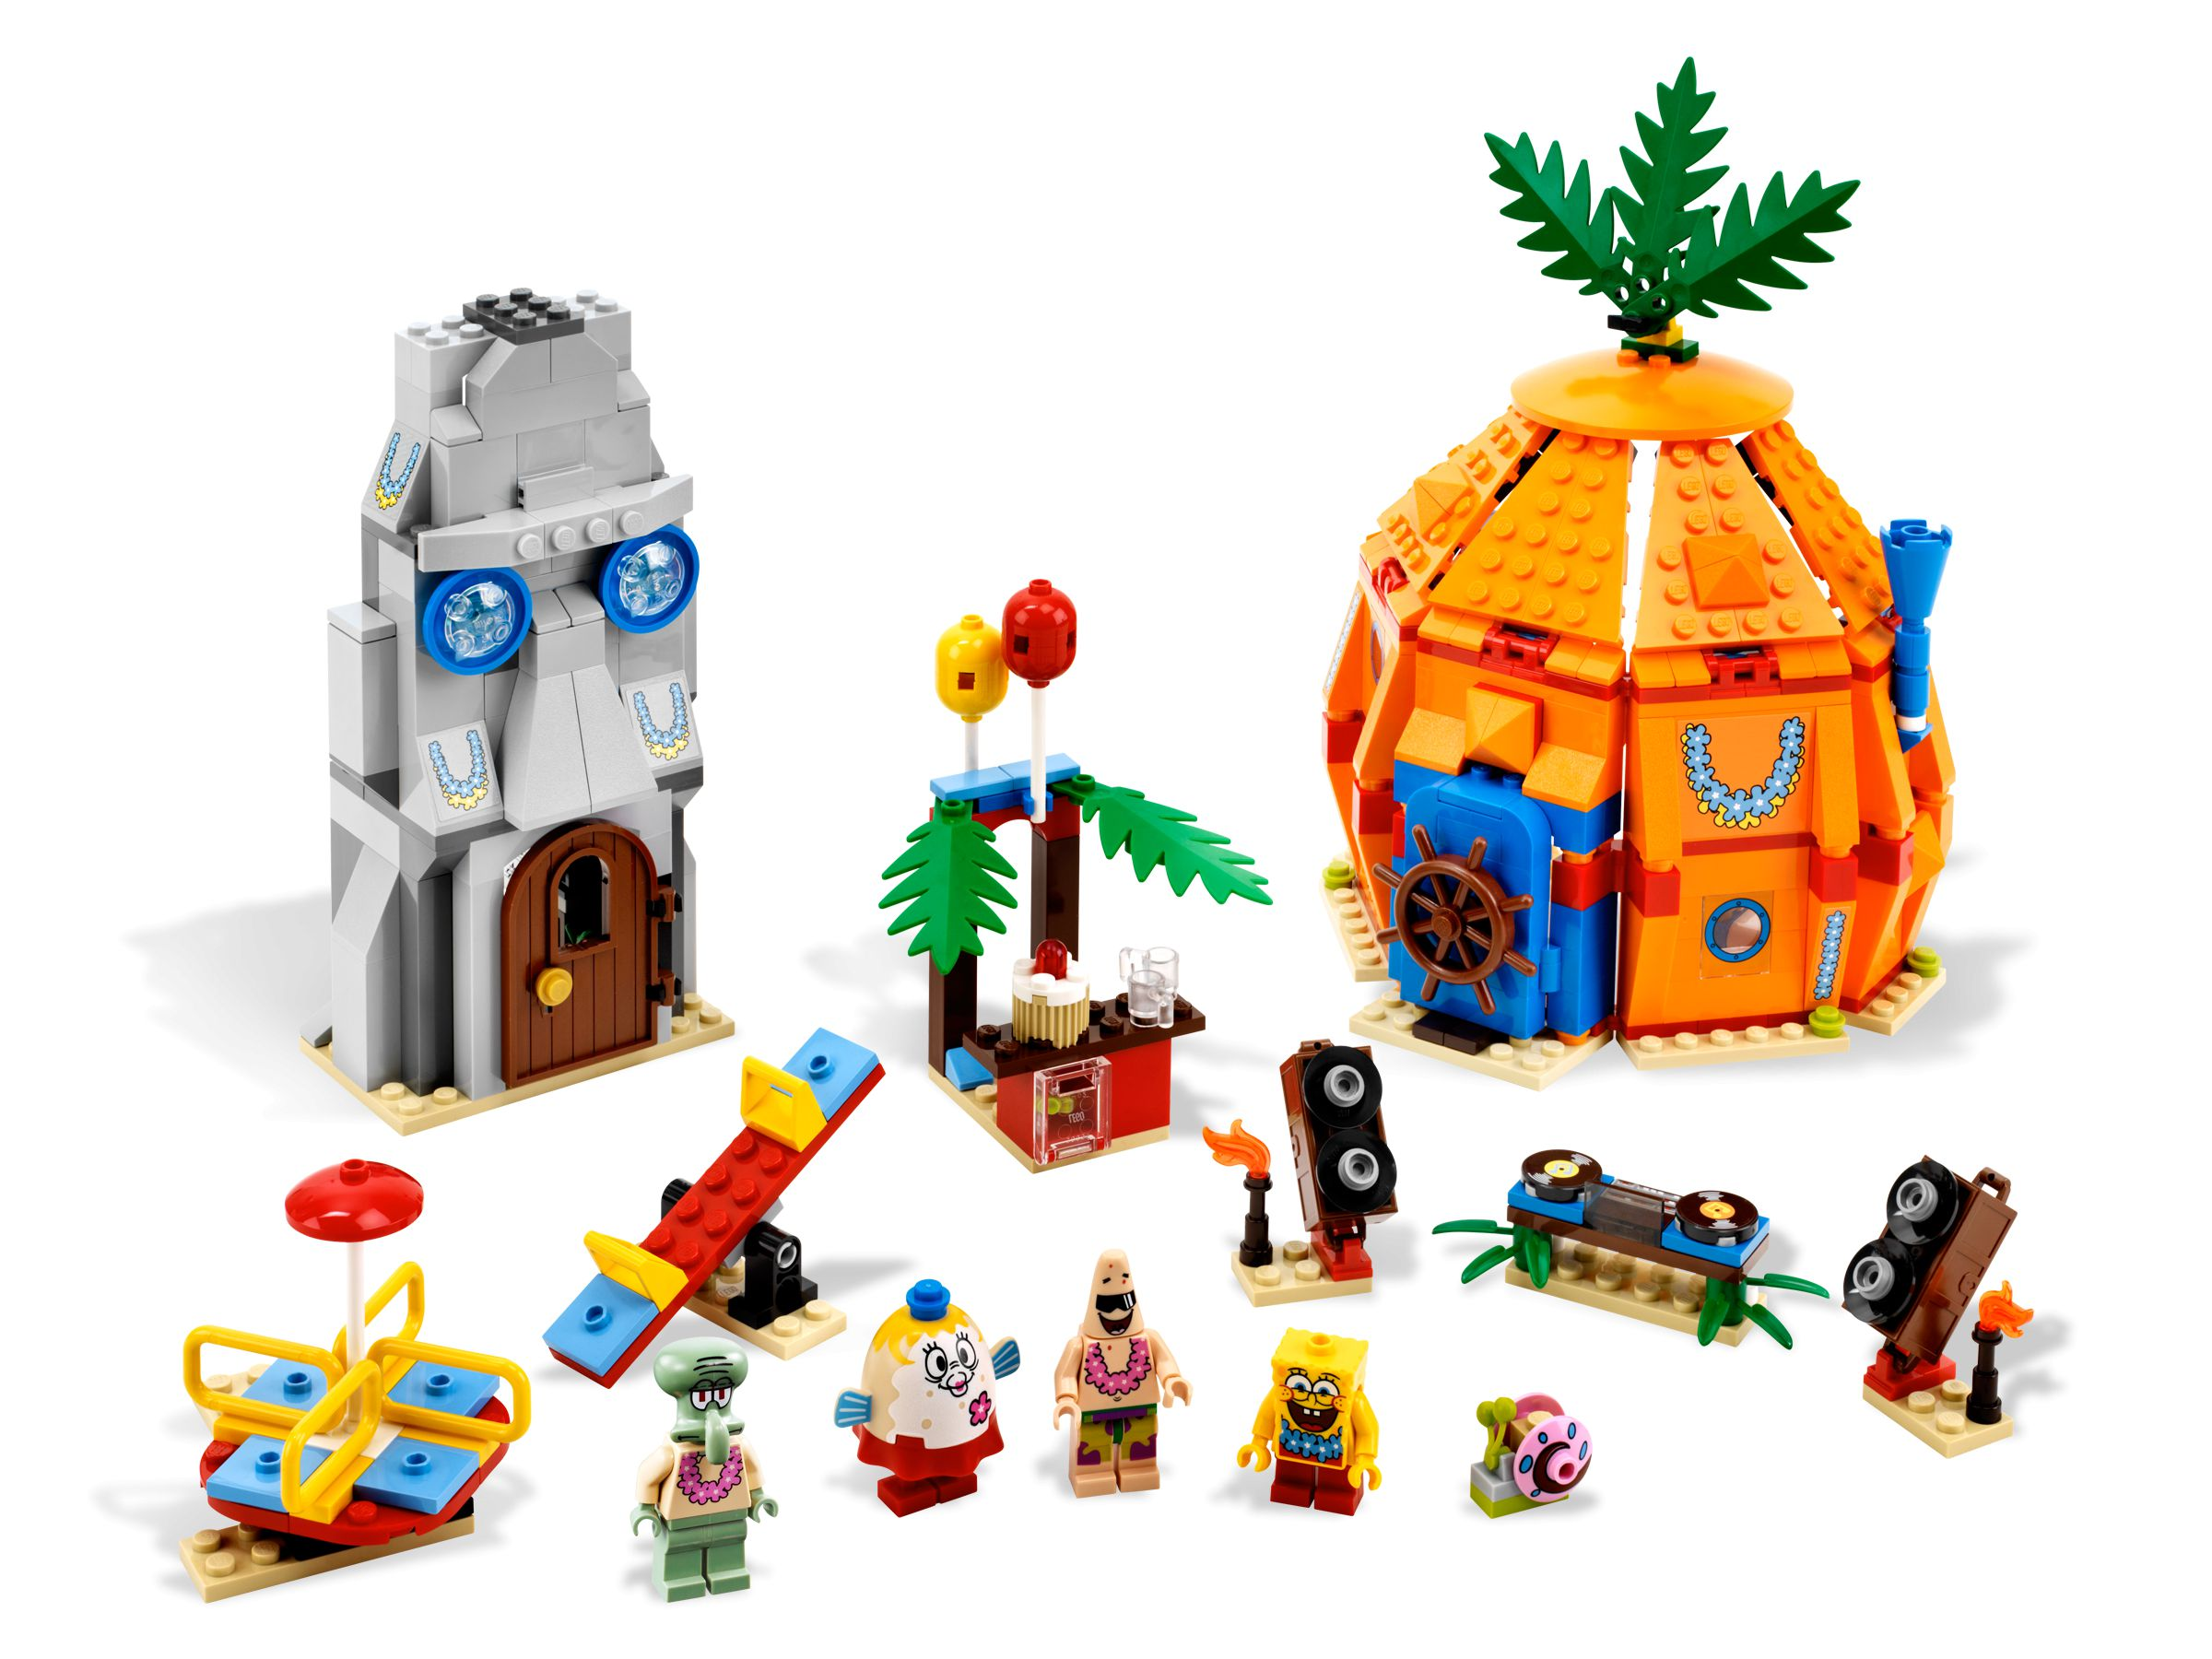 LEGO SpongeBob SquarePants 3818 Bikini Bottom Undersea Party LEGO_3818.jpg